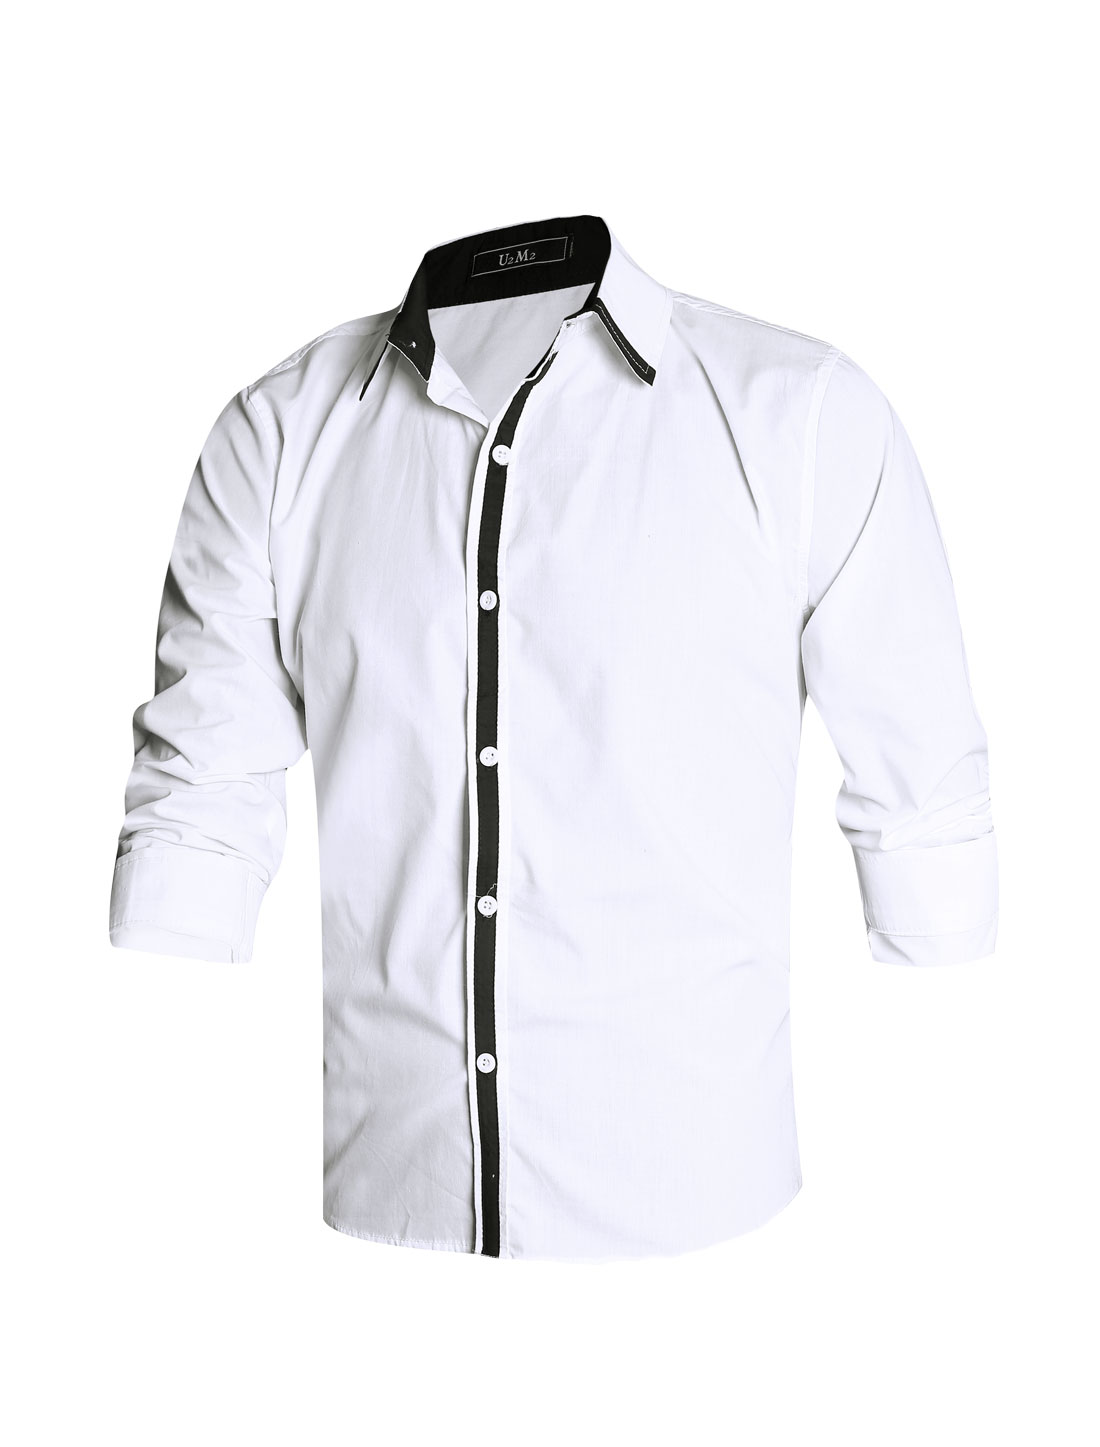 Men White Button Cuffs Color Block Detail Slim Fit Leisure Shirt M